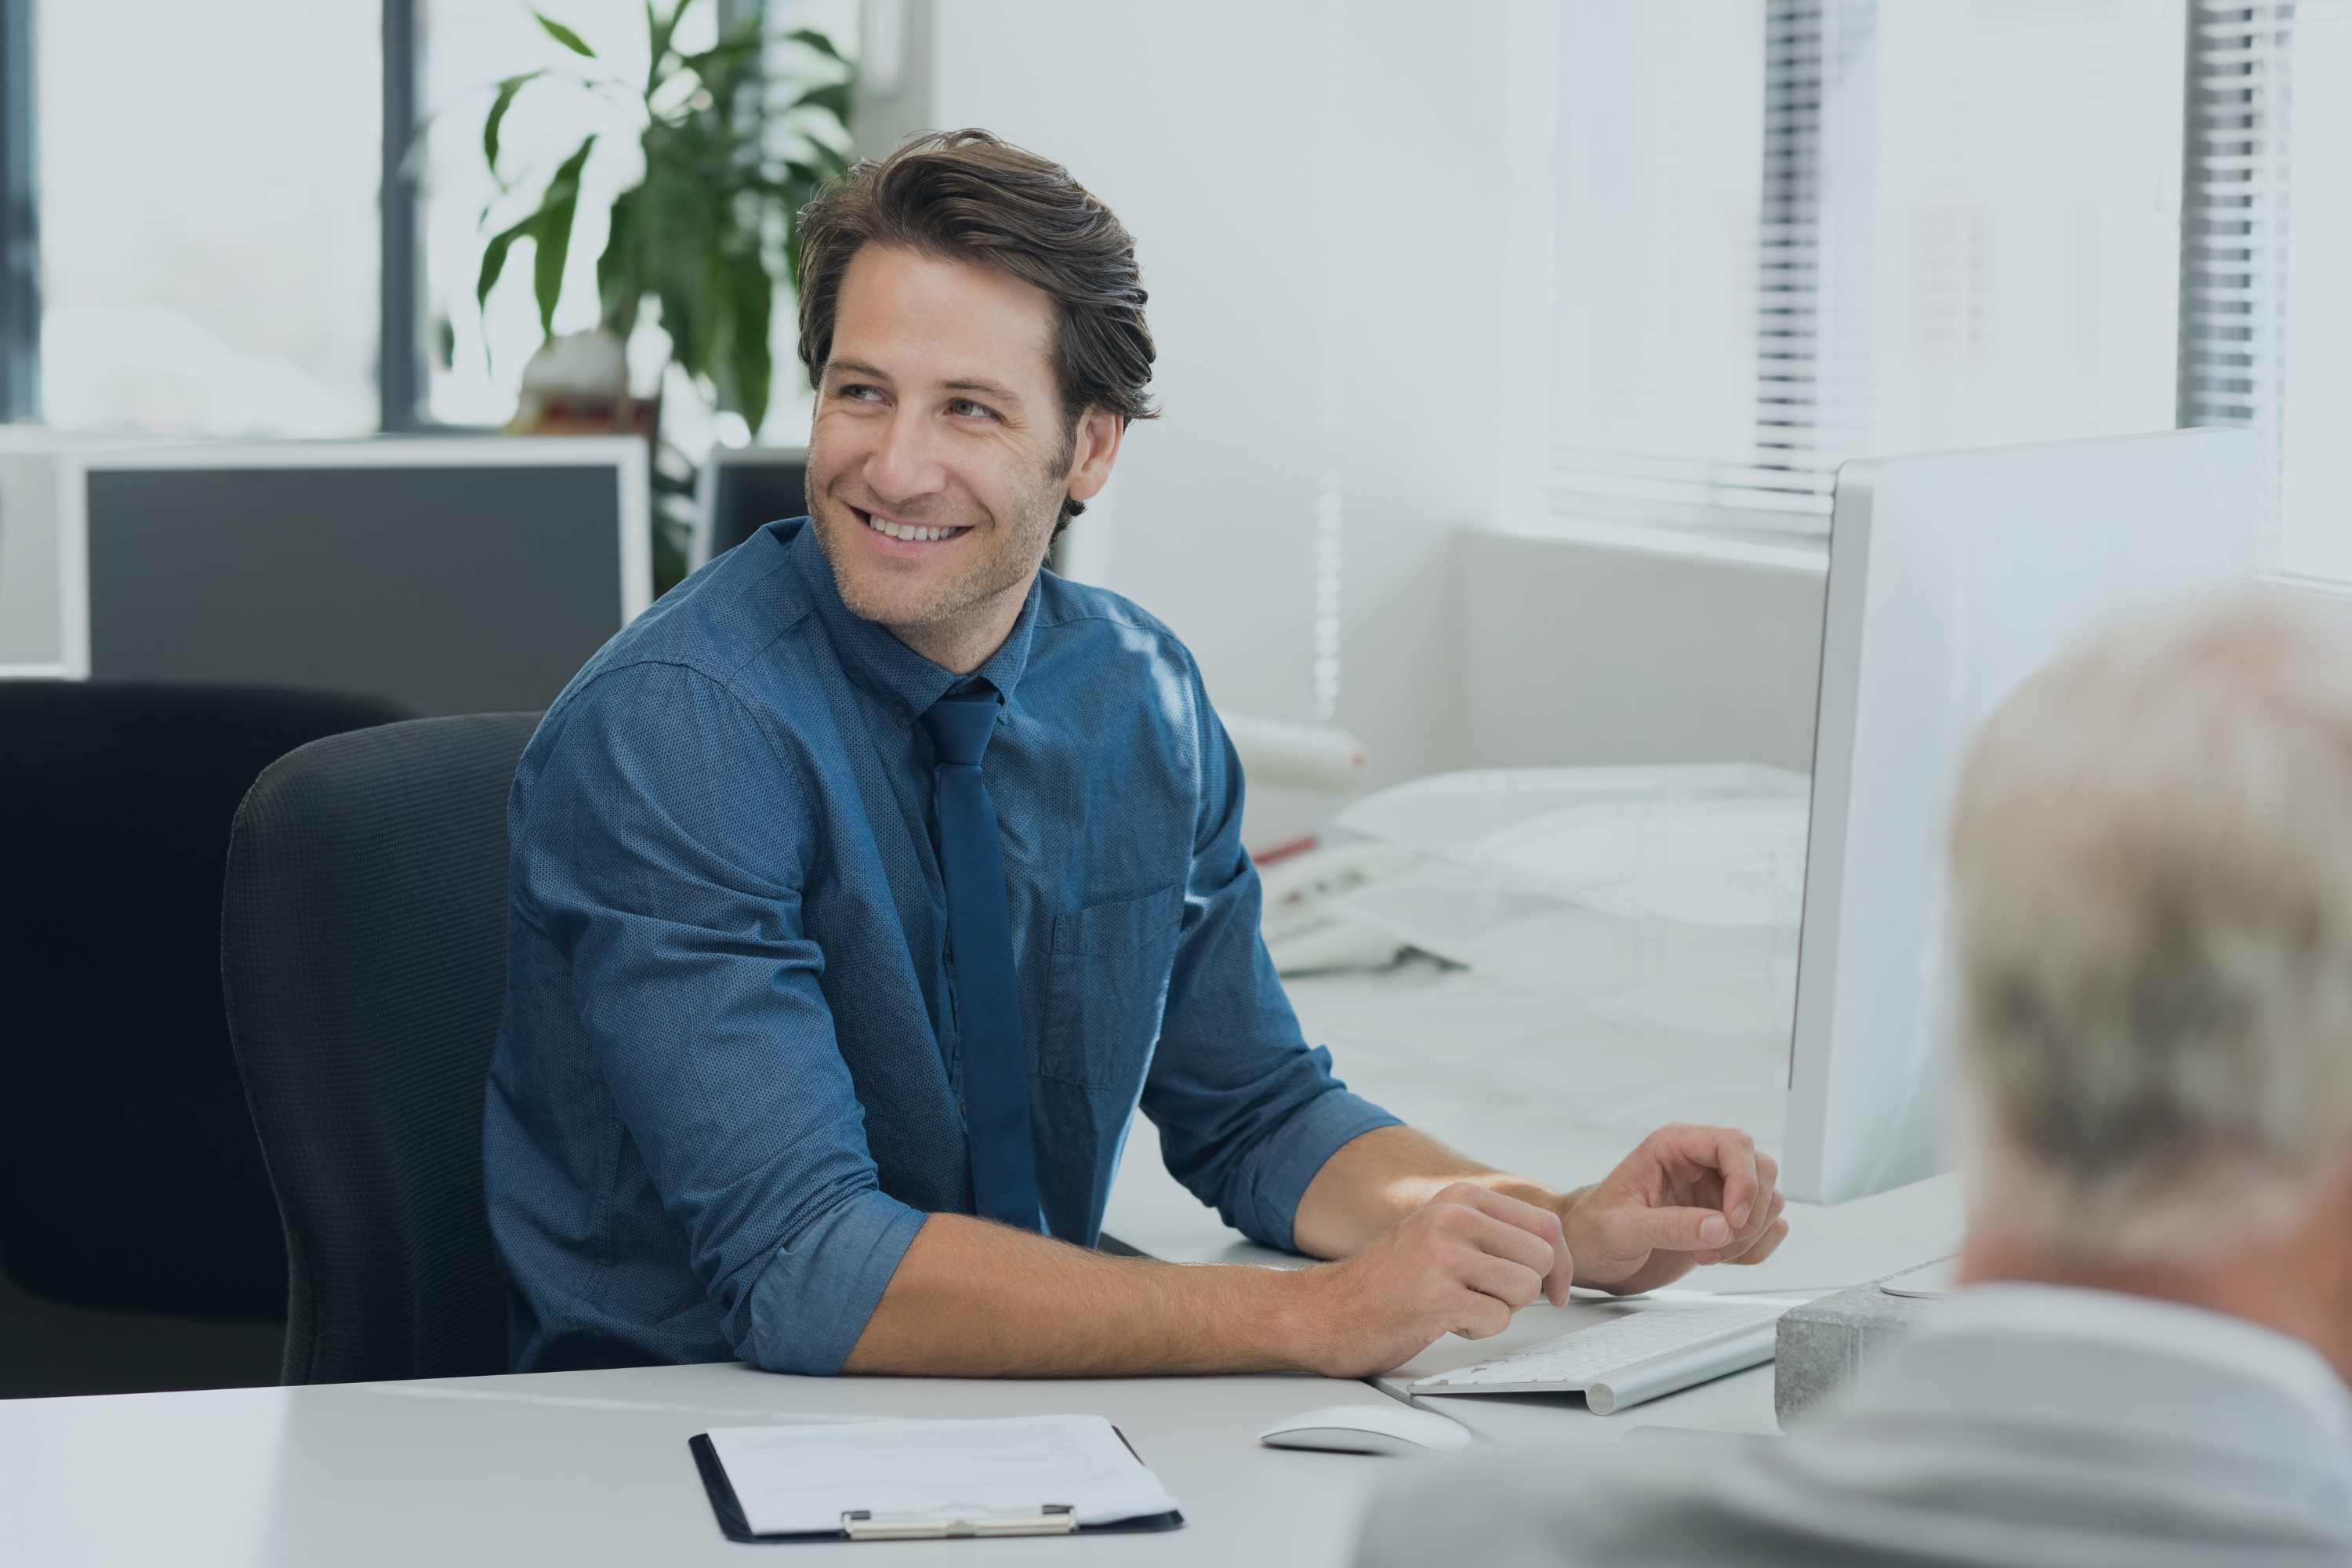 cheerful-youn-ap-manager-businessman-working-on-desktop-computer-at-office